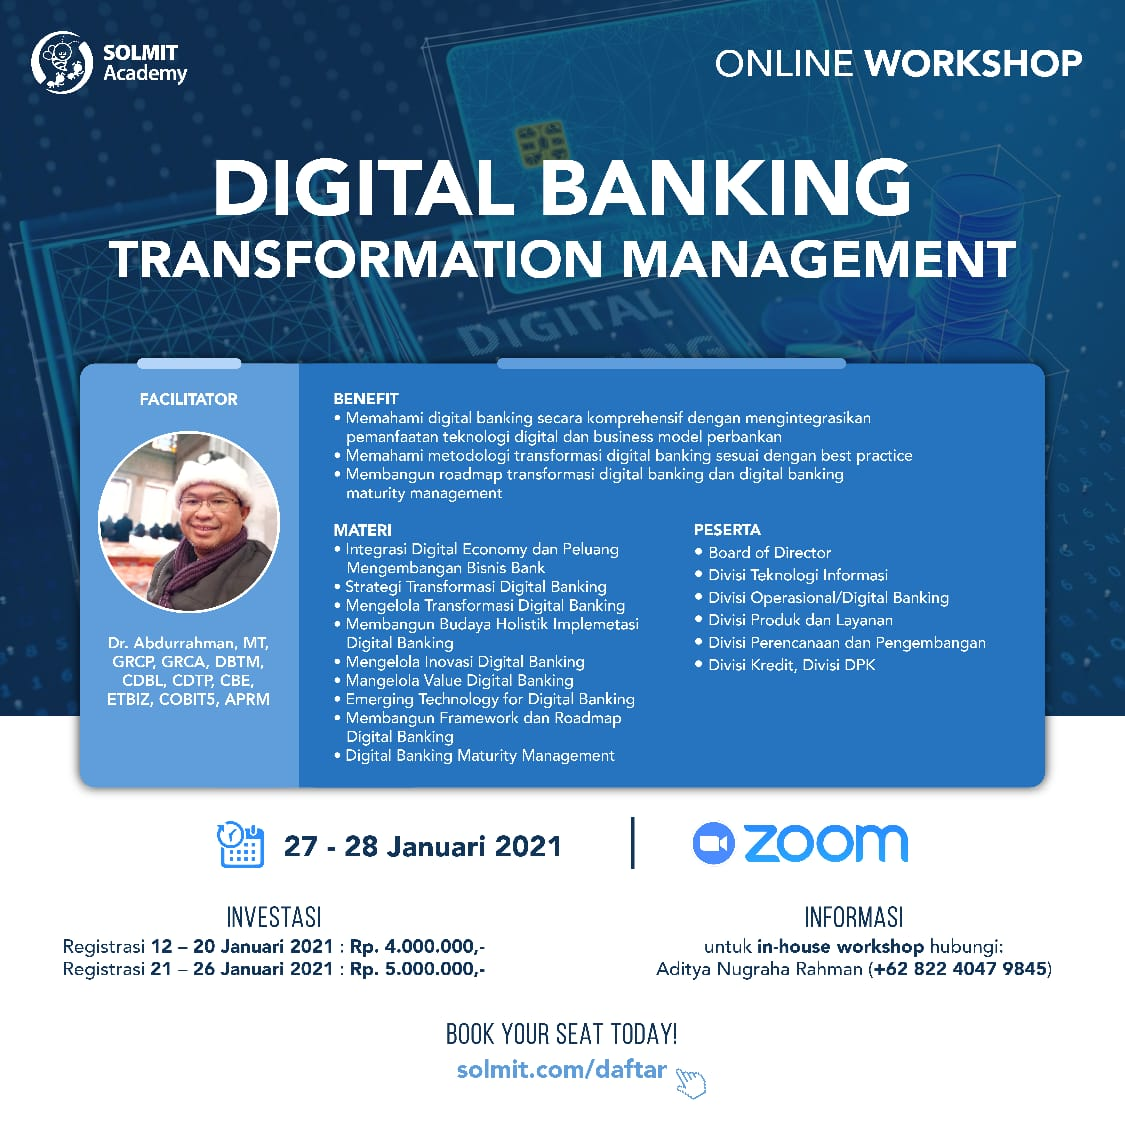 Online Workshop - Digital Banking Transformation Management